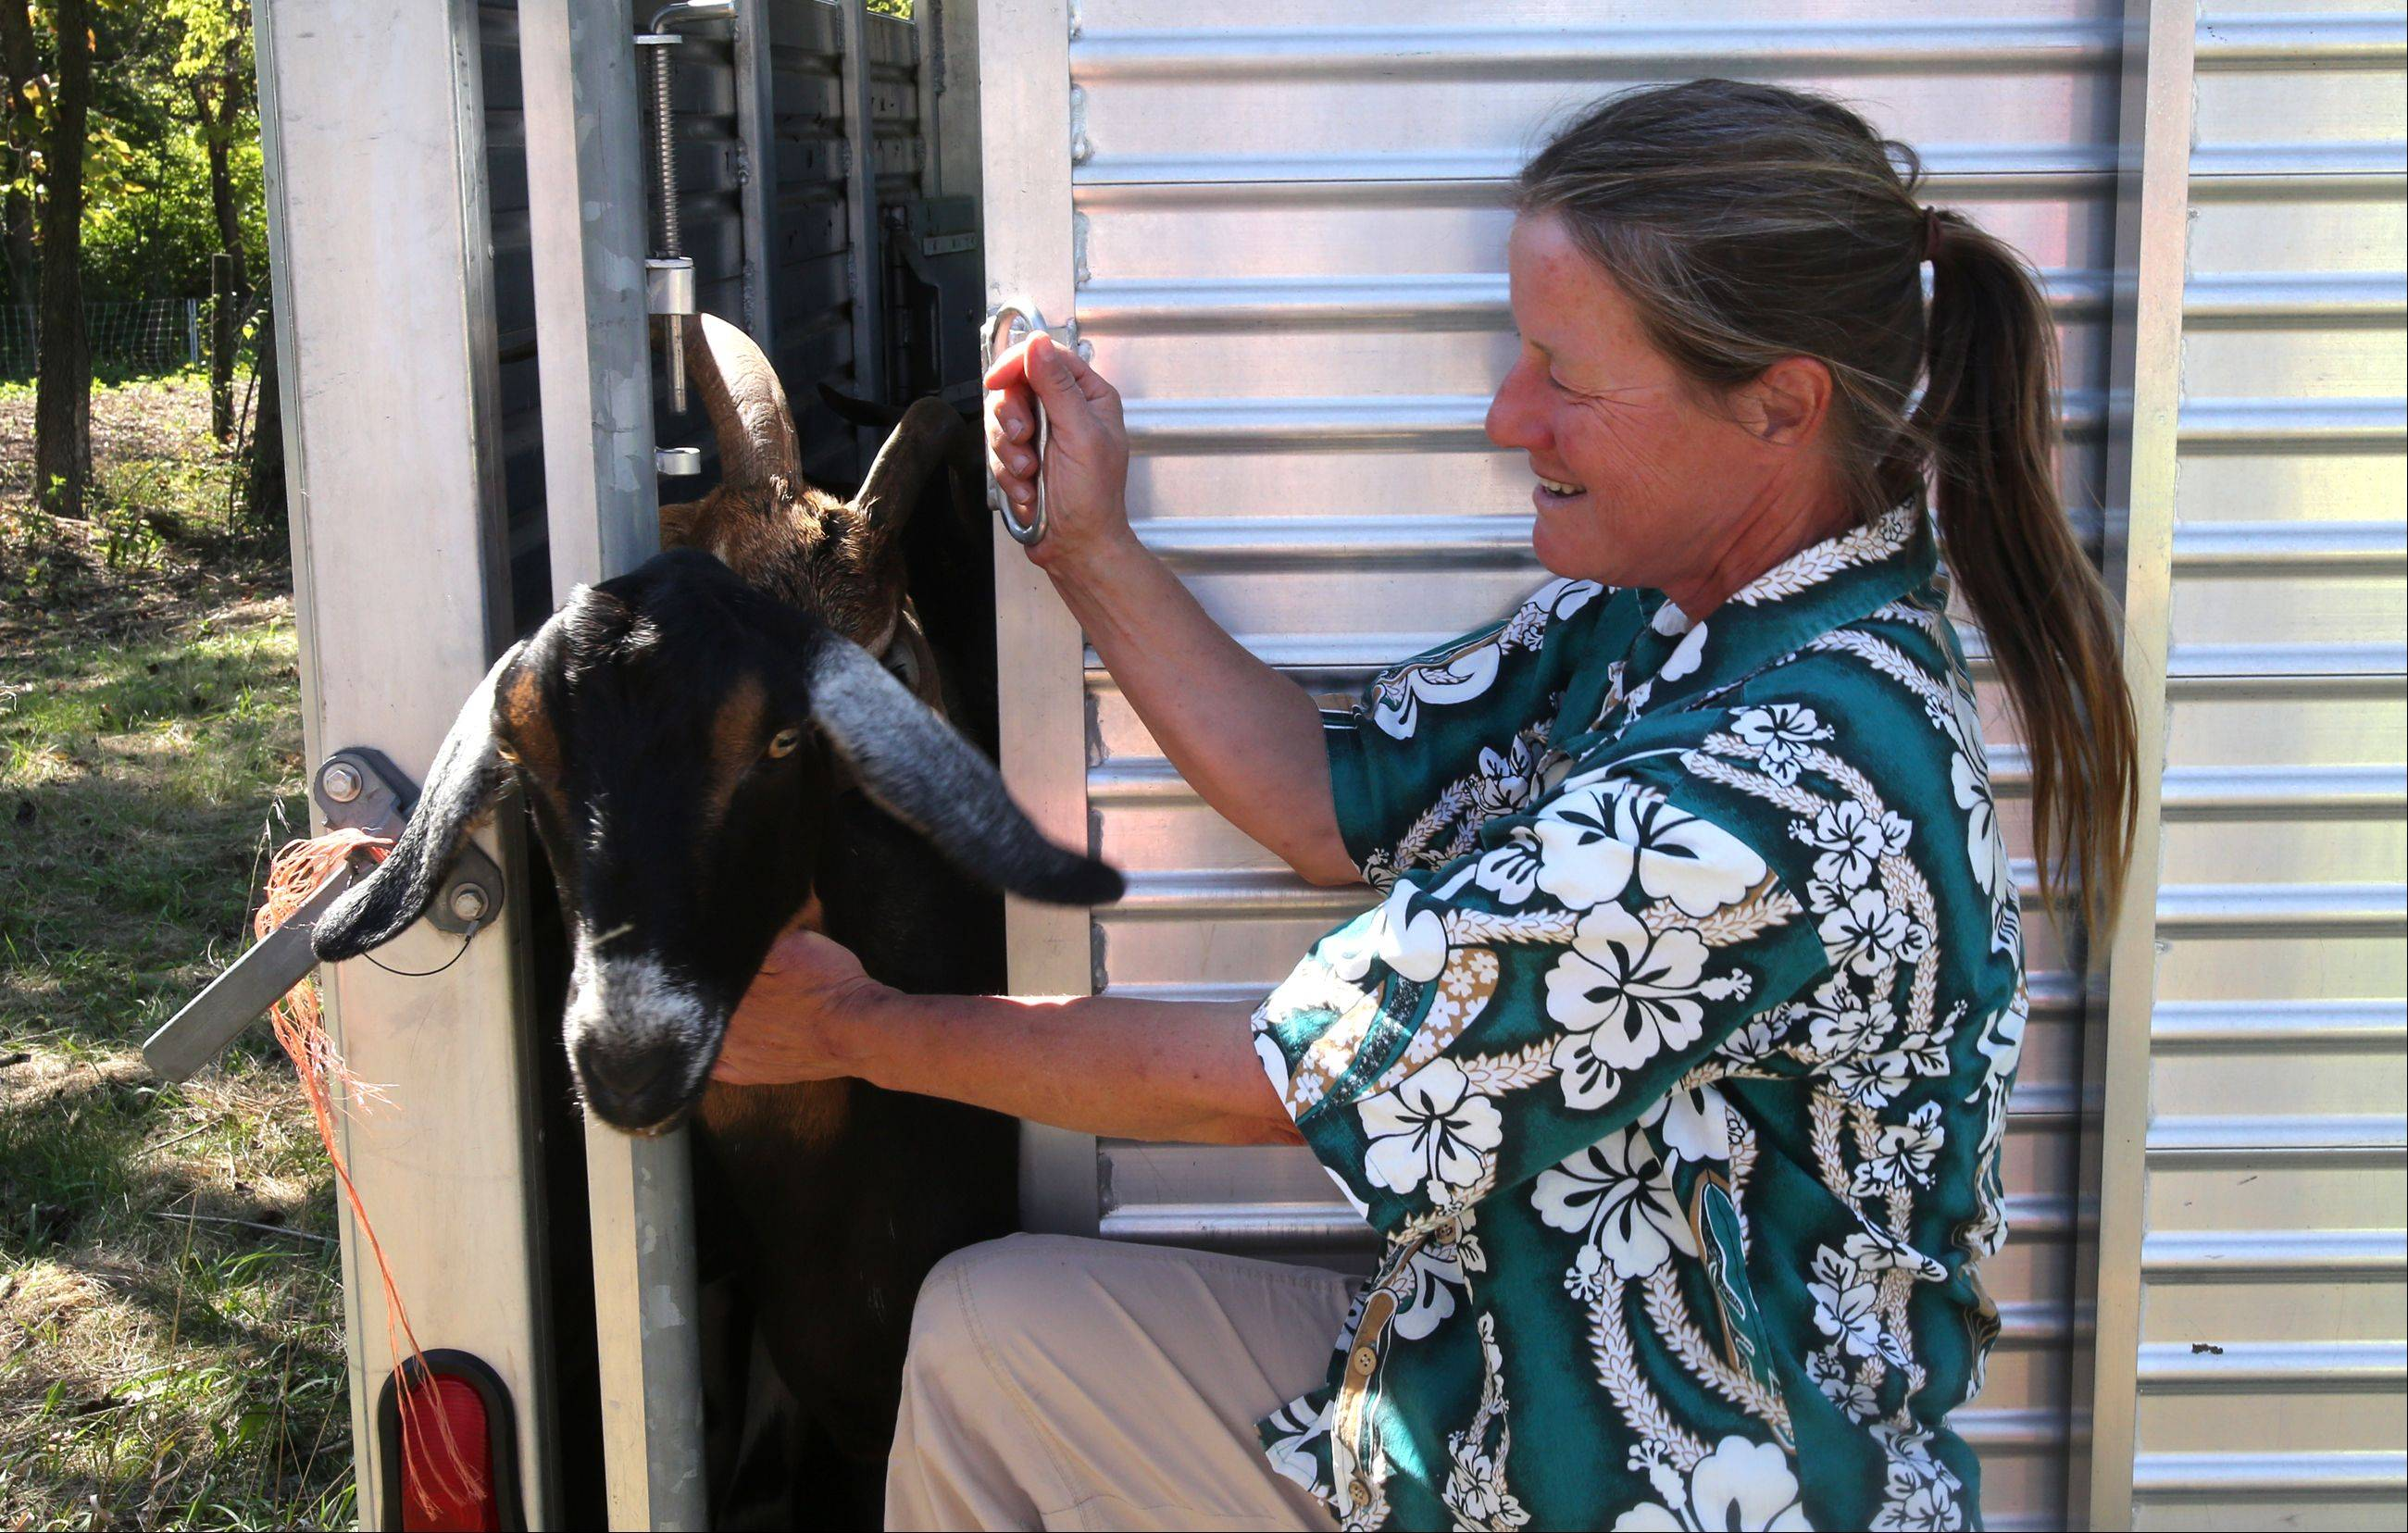 One of Kim Hunter's 45 goats is ready to be released Tuesday afternoon to the fields of Knoch Knolls park in Naperville. The goats will graze for about four weeks, removing invasive plants in a 5-acre area so a disc golf course can be expanded.